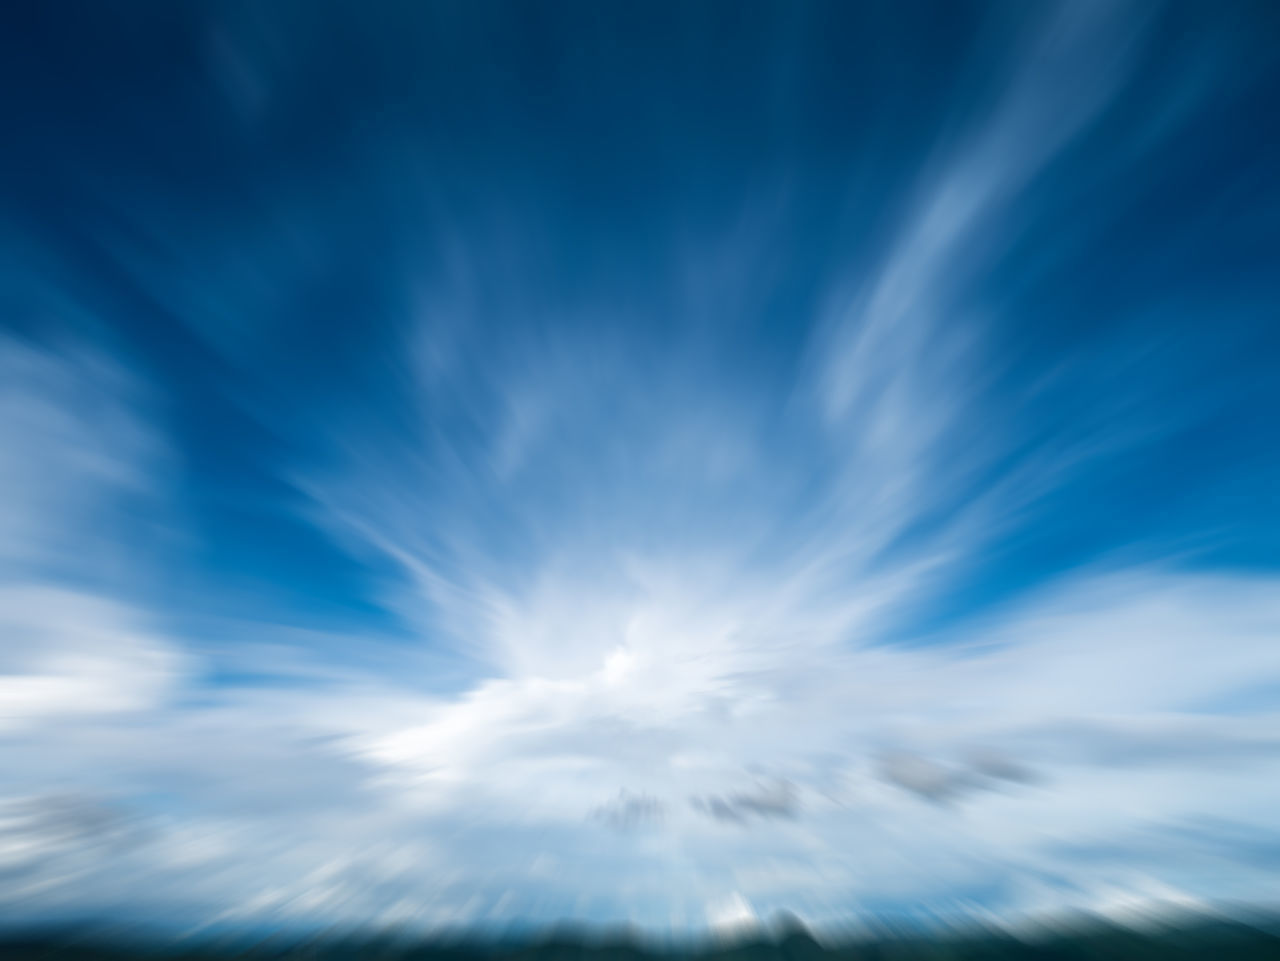 sky, cloud - sky, blue, nature, beauty in nature, scenics, tranquil scene, tranquility, low angle view, sky only, outdoors, no people, backgrounds, day